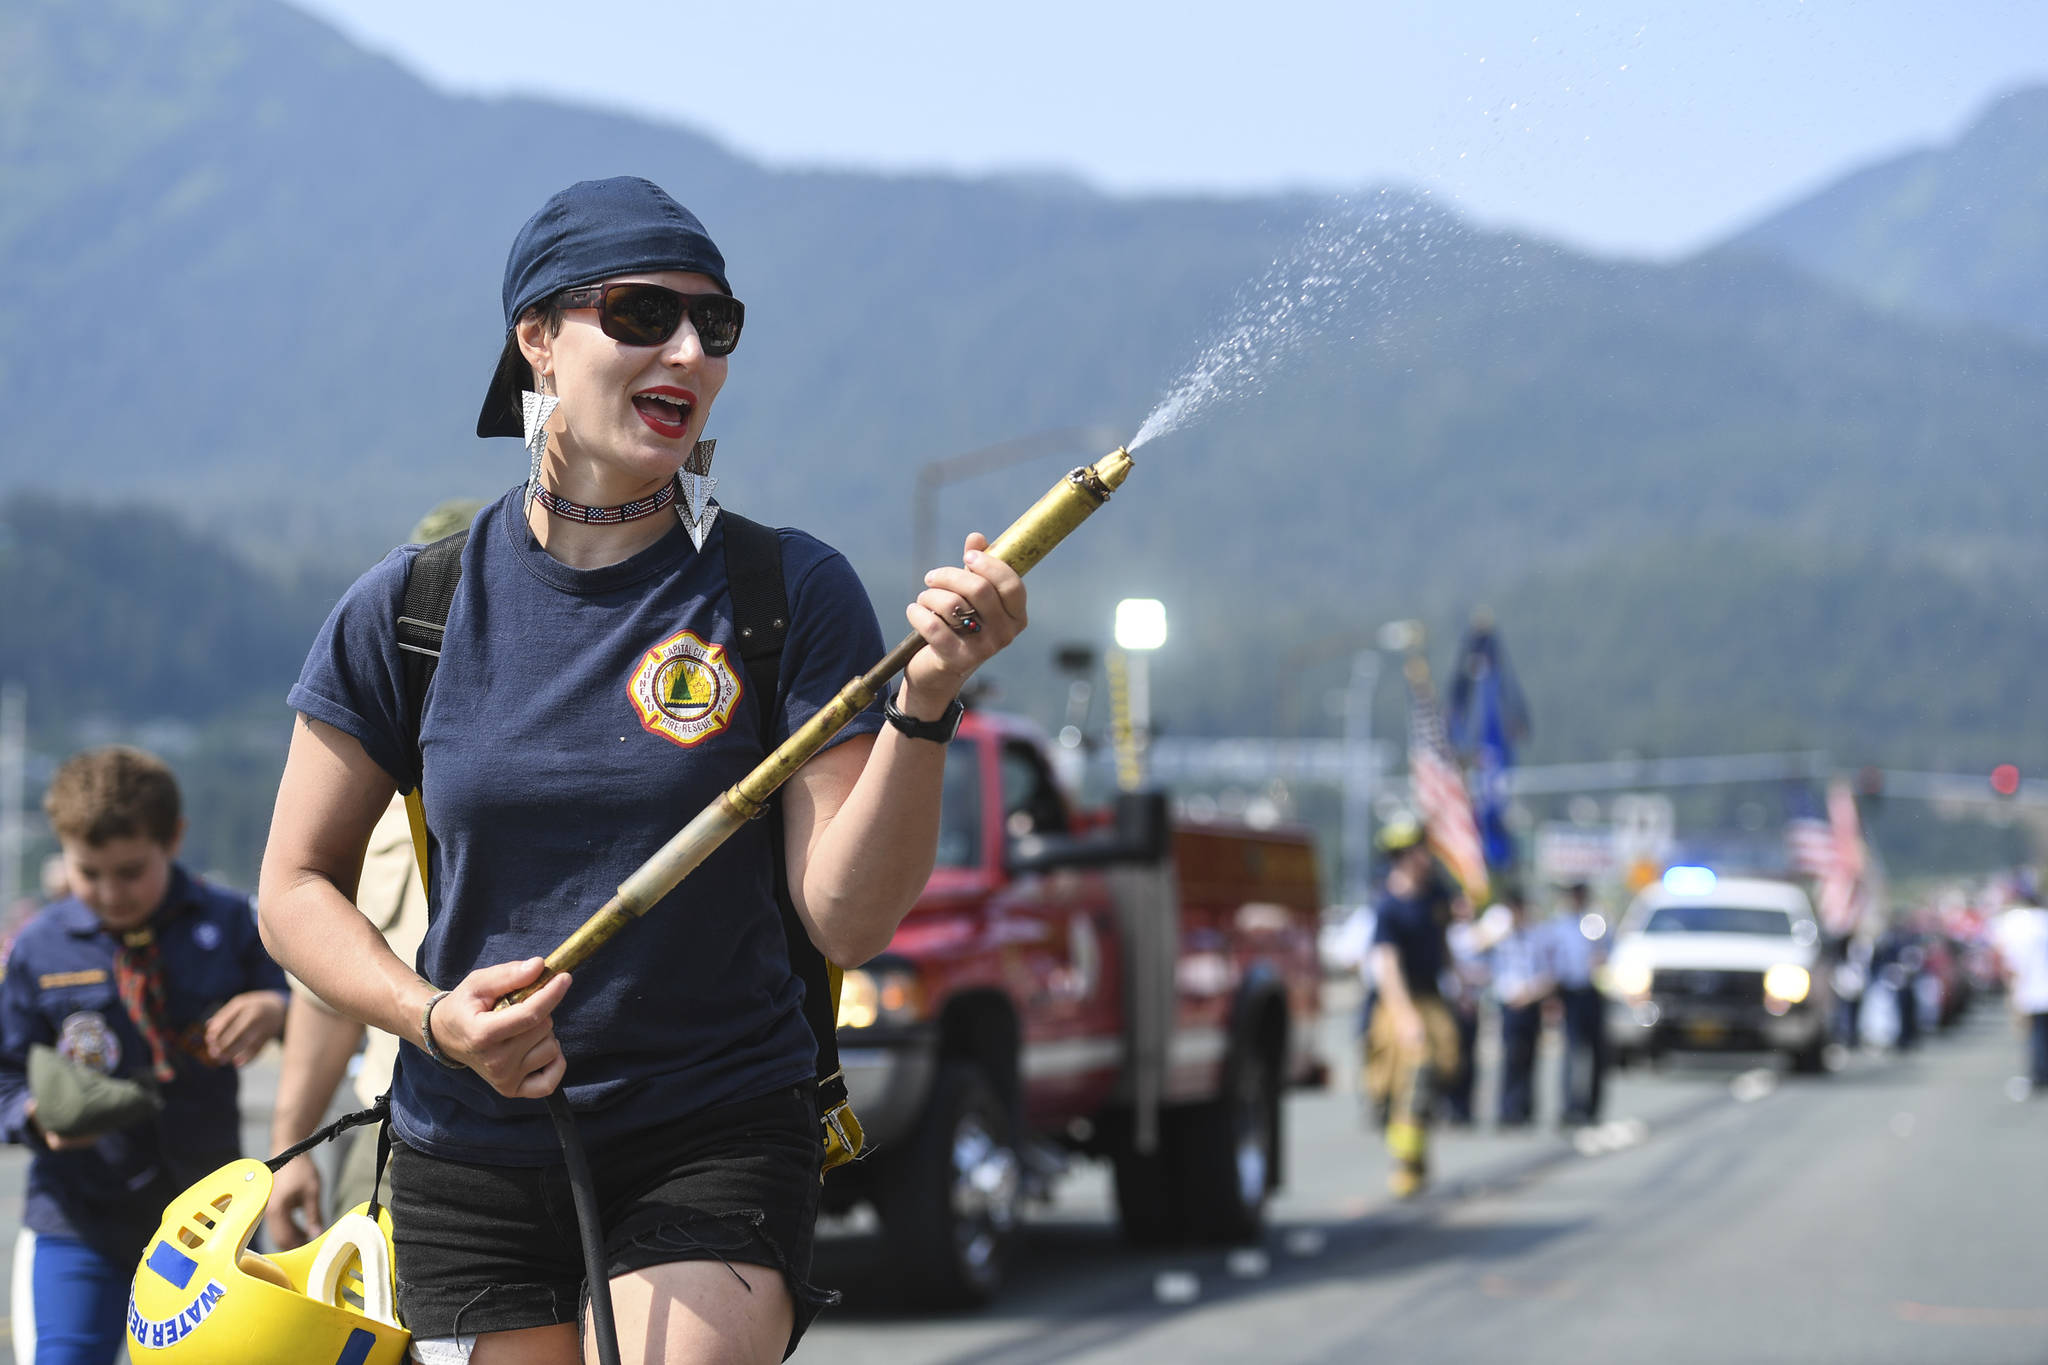 Meghan DeSloover of Capital City Fire/Rescue keeps poeple cool during the Juneau Fourth of July Parade on Thursday, July 4, 2019. (Michael Penn | Juneau Empire)